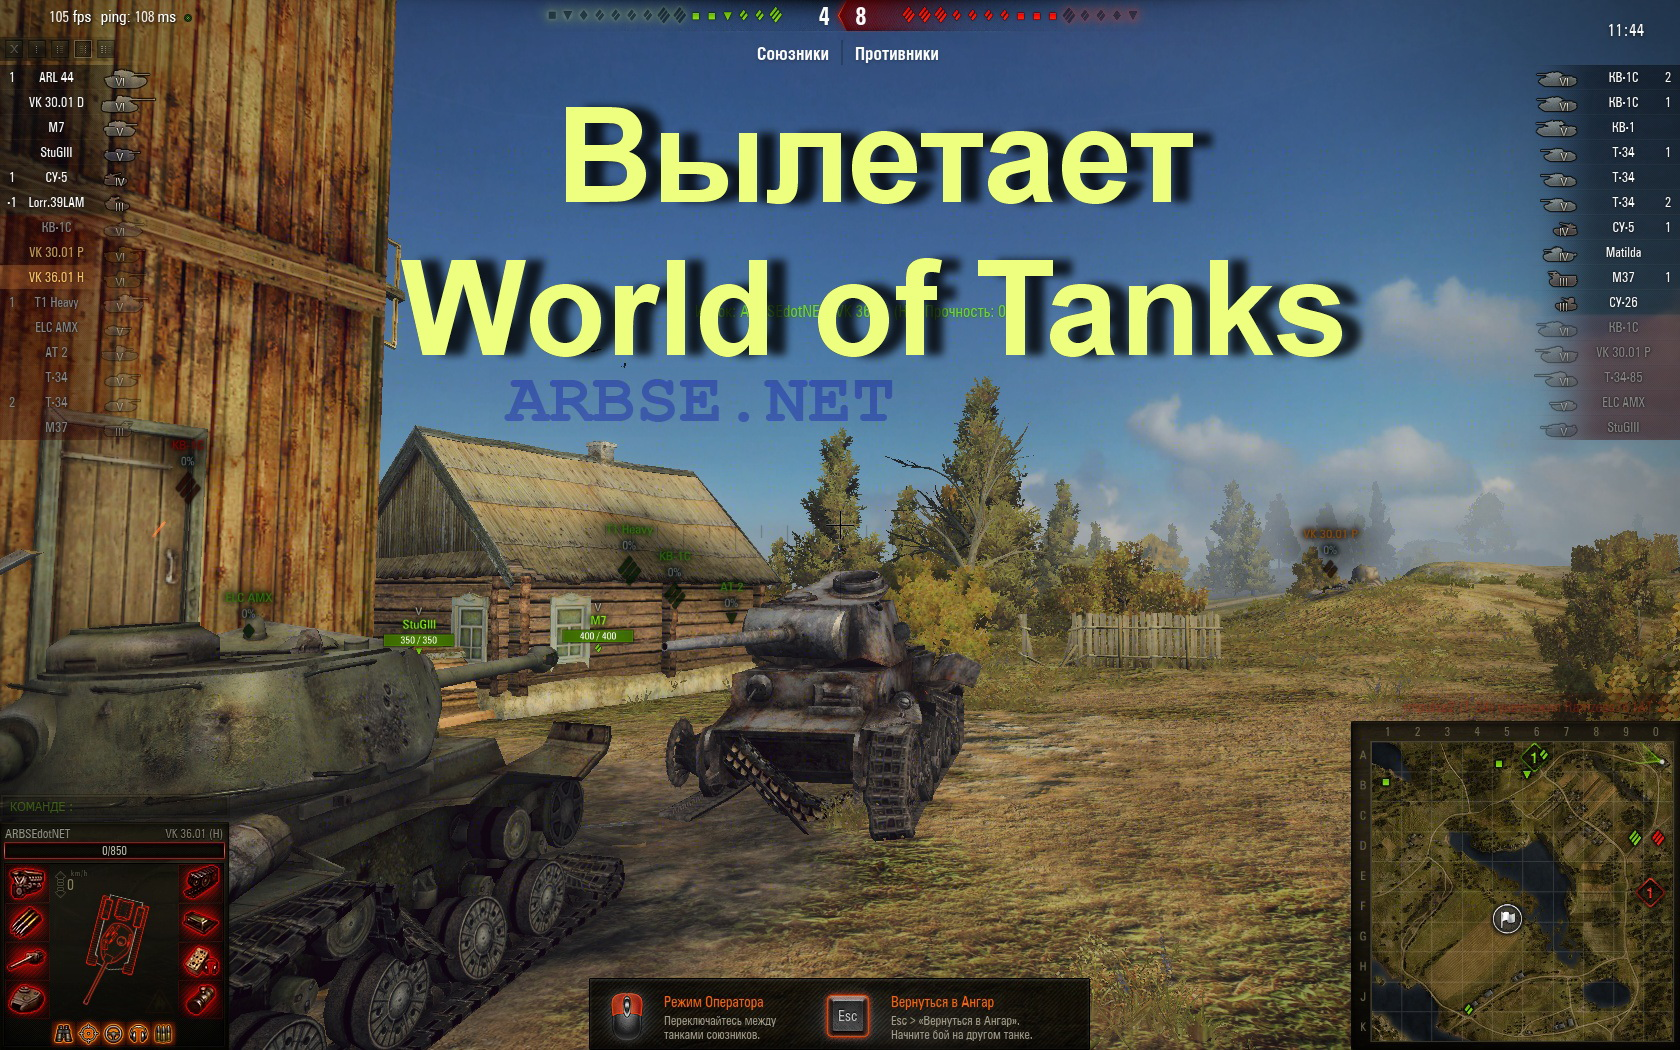 Играть world of tanks 2011 онлайн бесплатно без регистрации